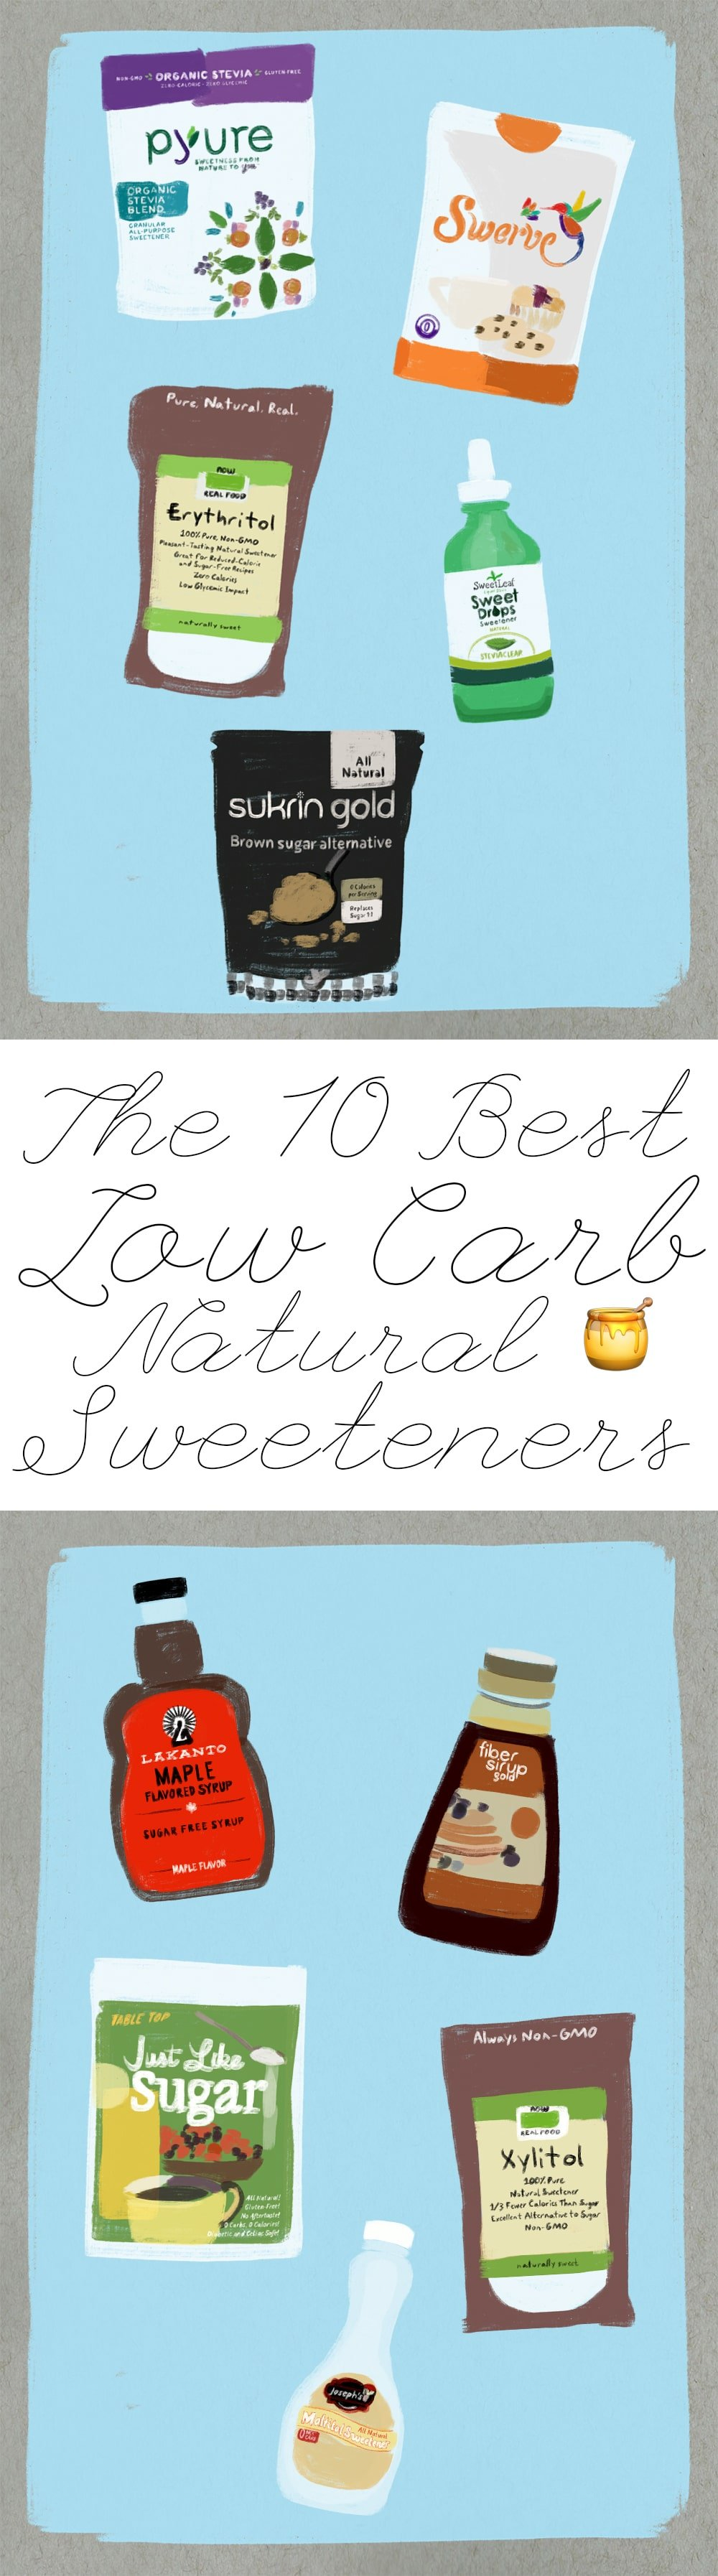 The 10 Best Low Carb Natural Sweeteners 🍯